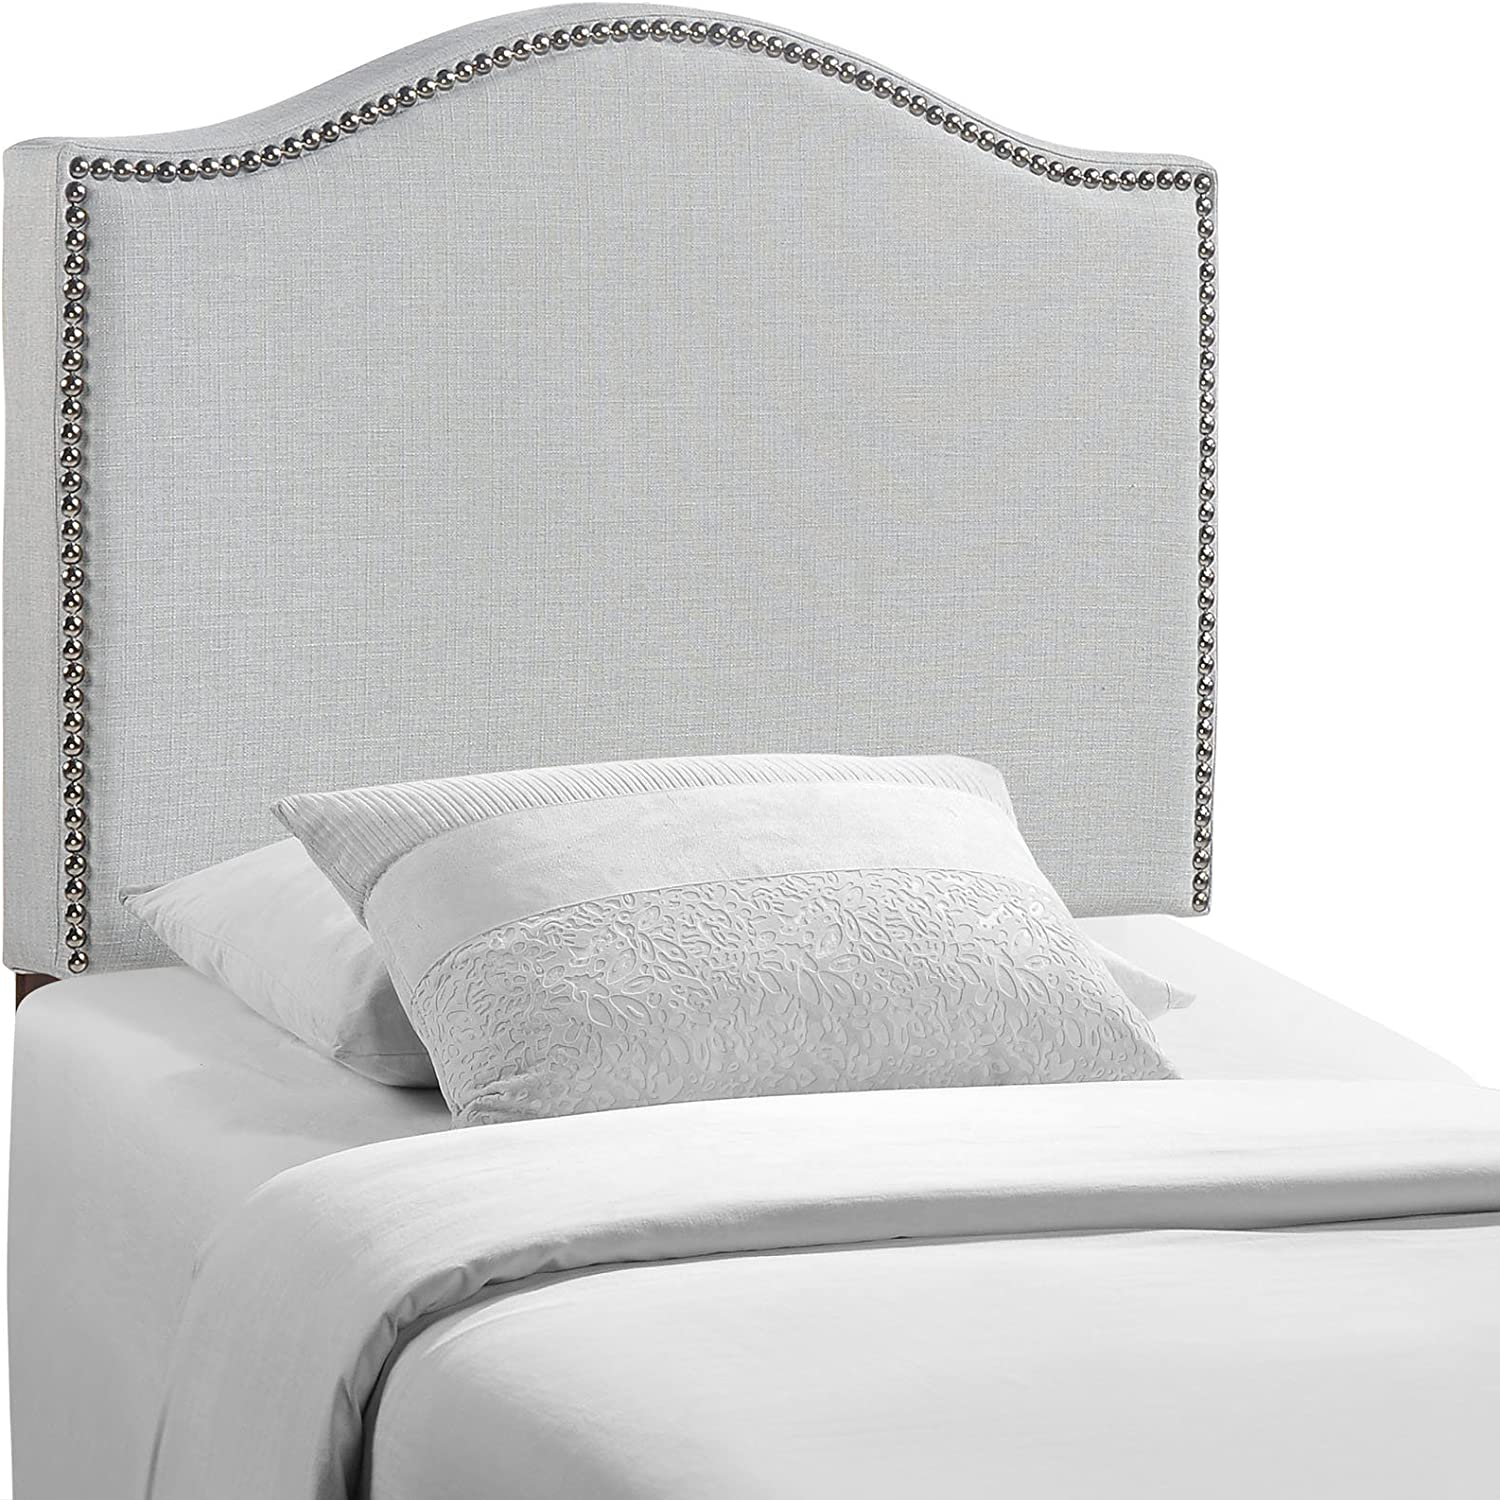 Headboard Fabric Upholstered Modern Heavy Duty Queen Size With Gray Linen Curved